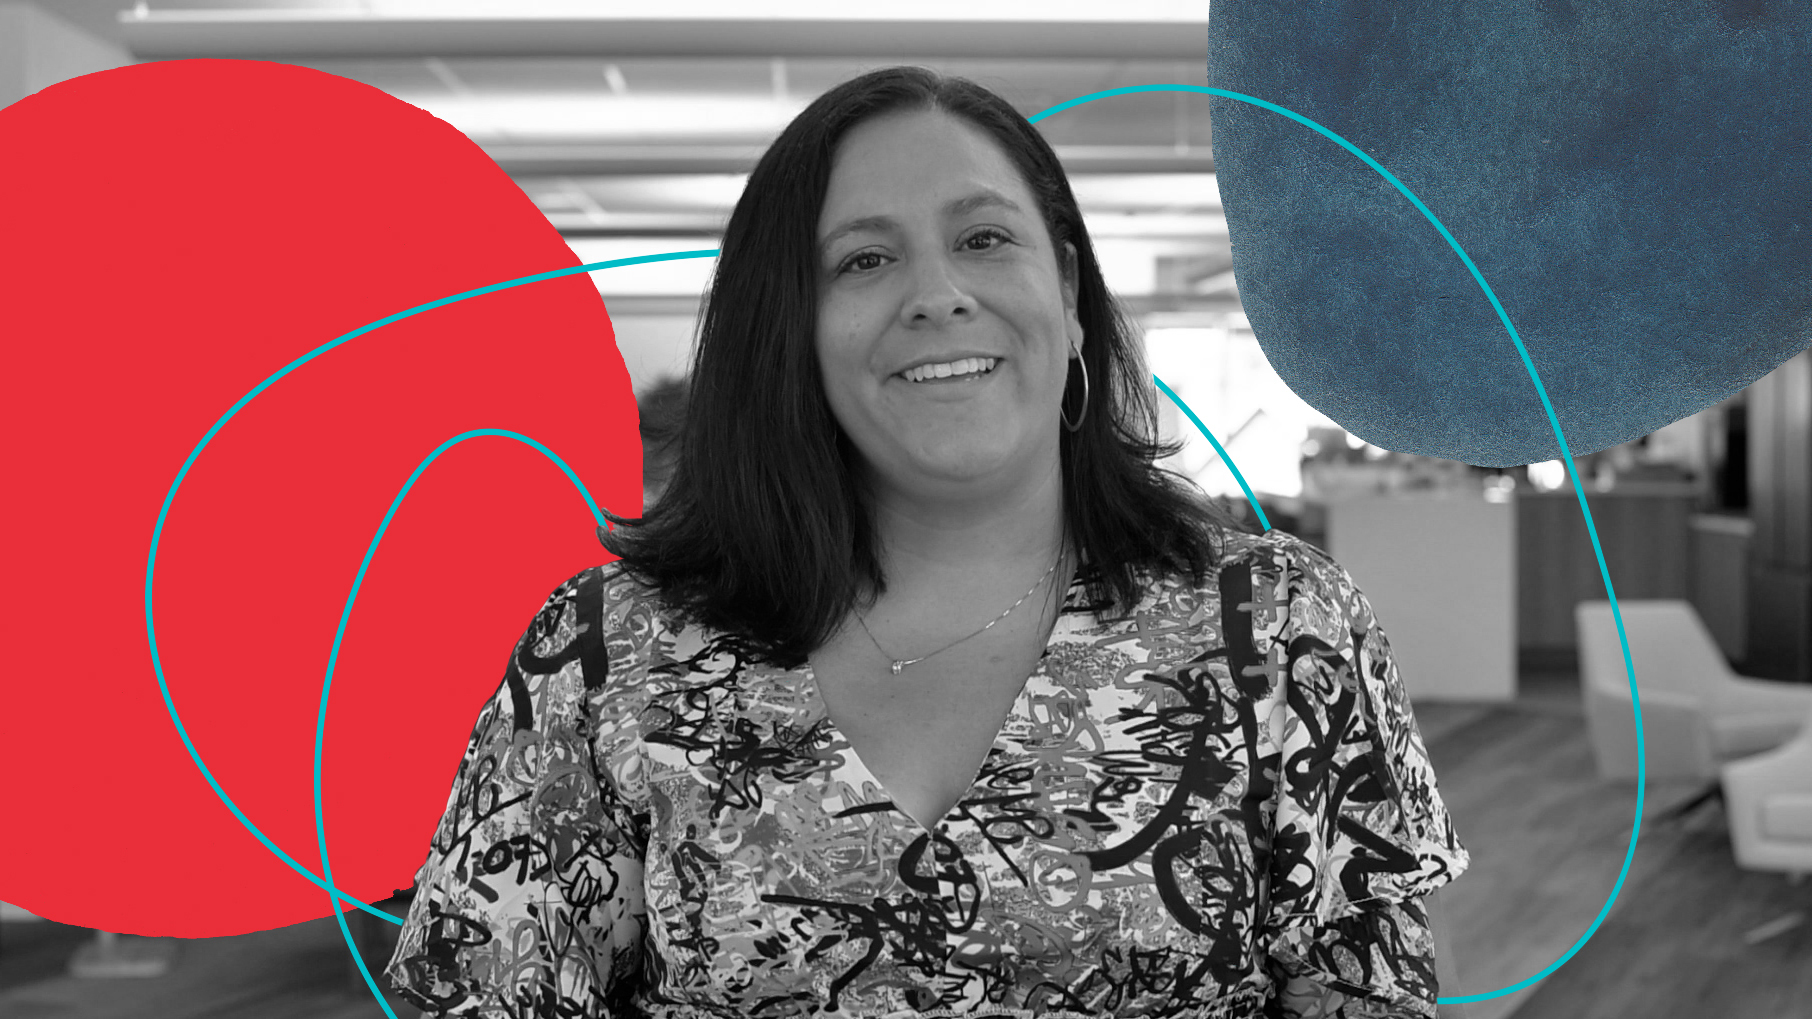 Want to know what makes PartnerHero great? Our people! Meet one of our heroes: Marcia Torres.